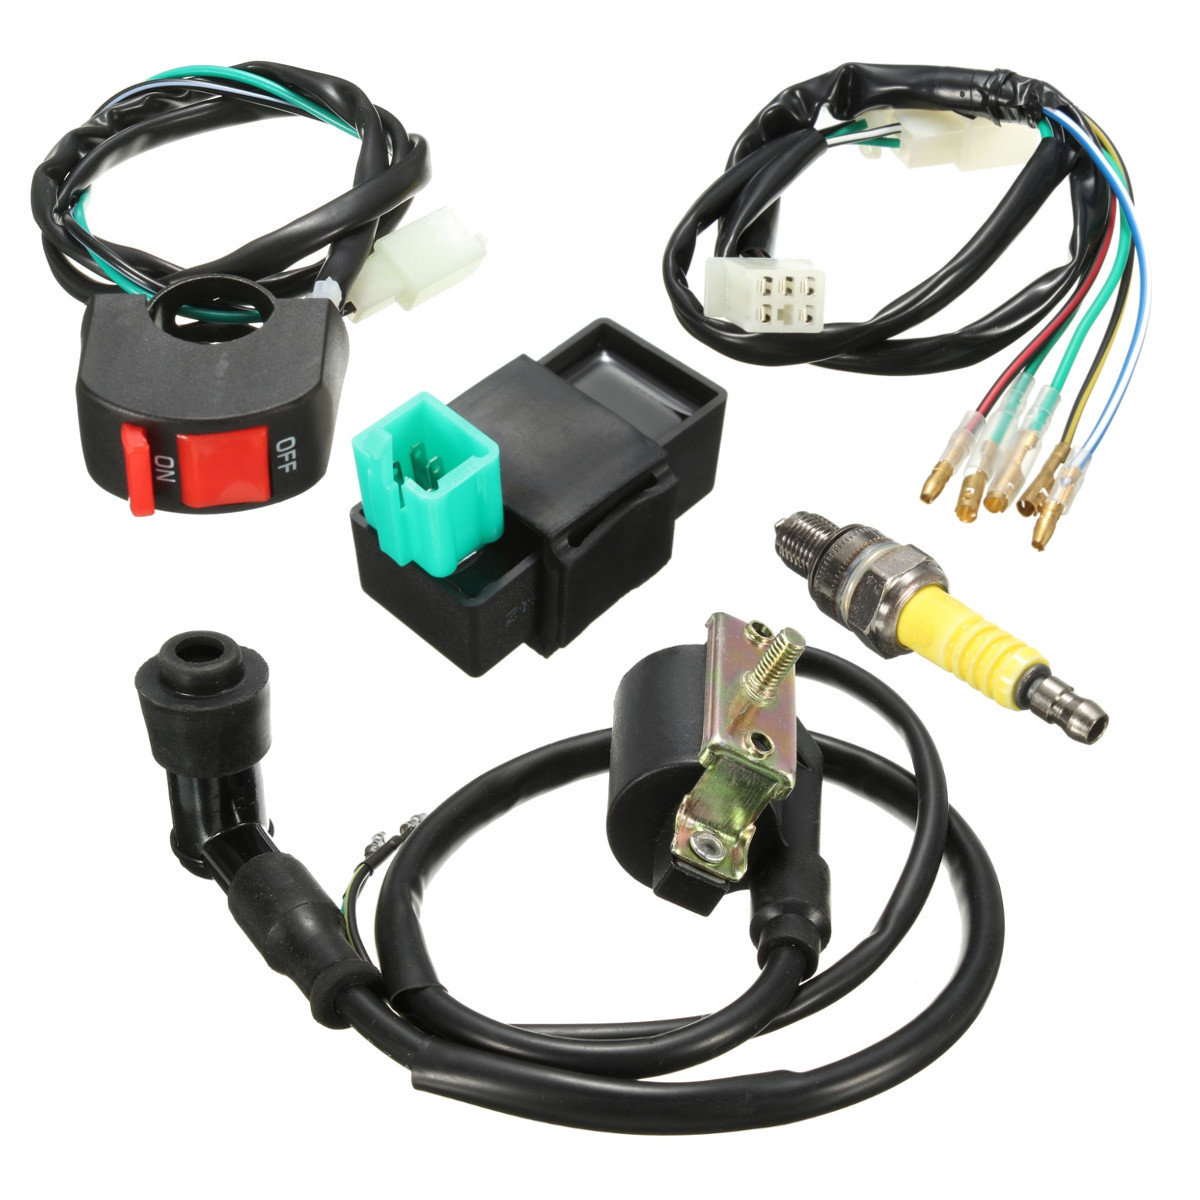 hight resolution of details about kill switch wiring loom harness ignition coil cdi spark plug for pit dirt bike